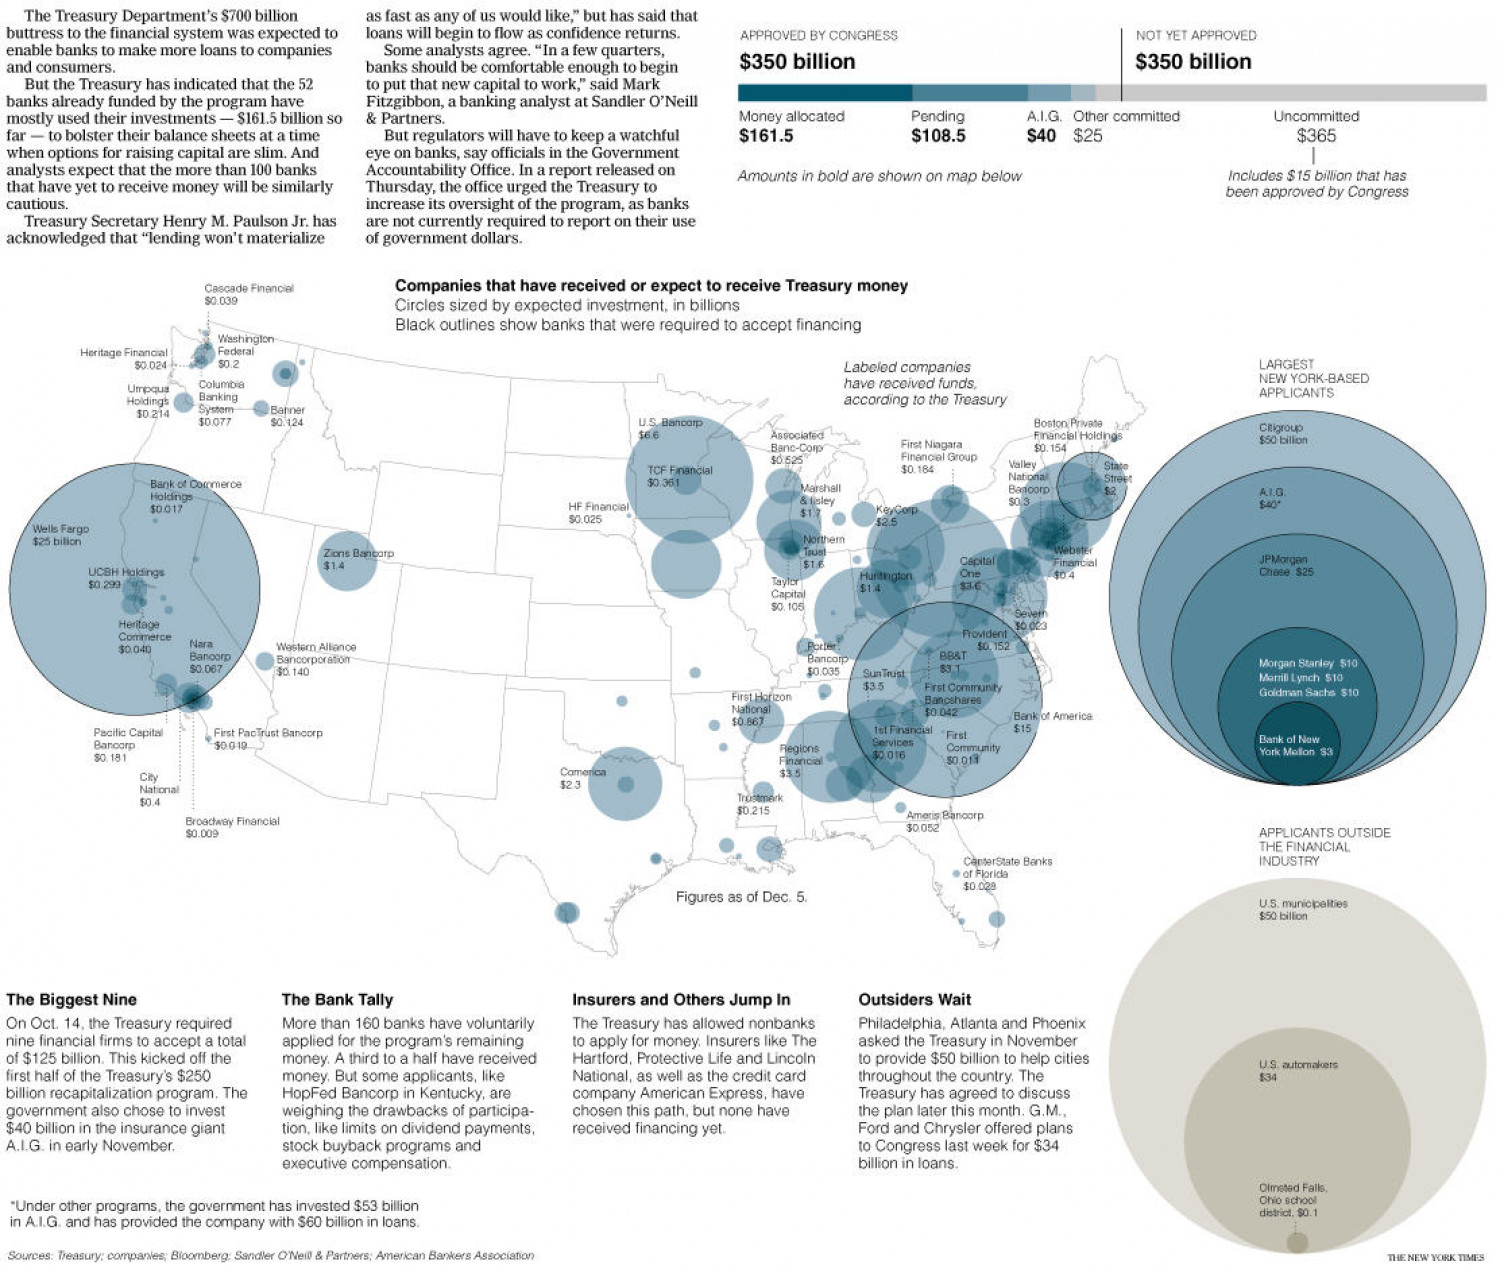 Keeping Tabs on the $700 Billion Bailout Infographic